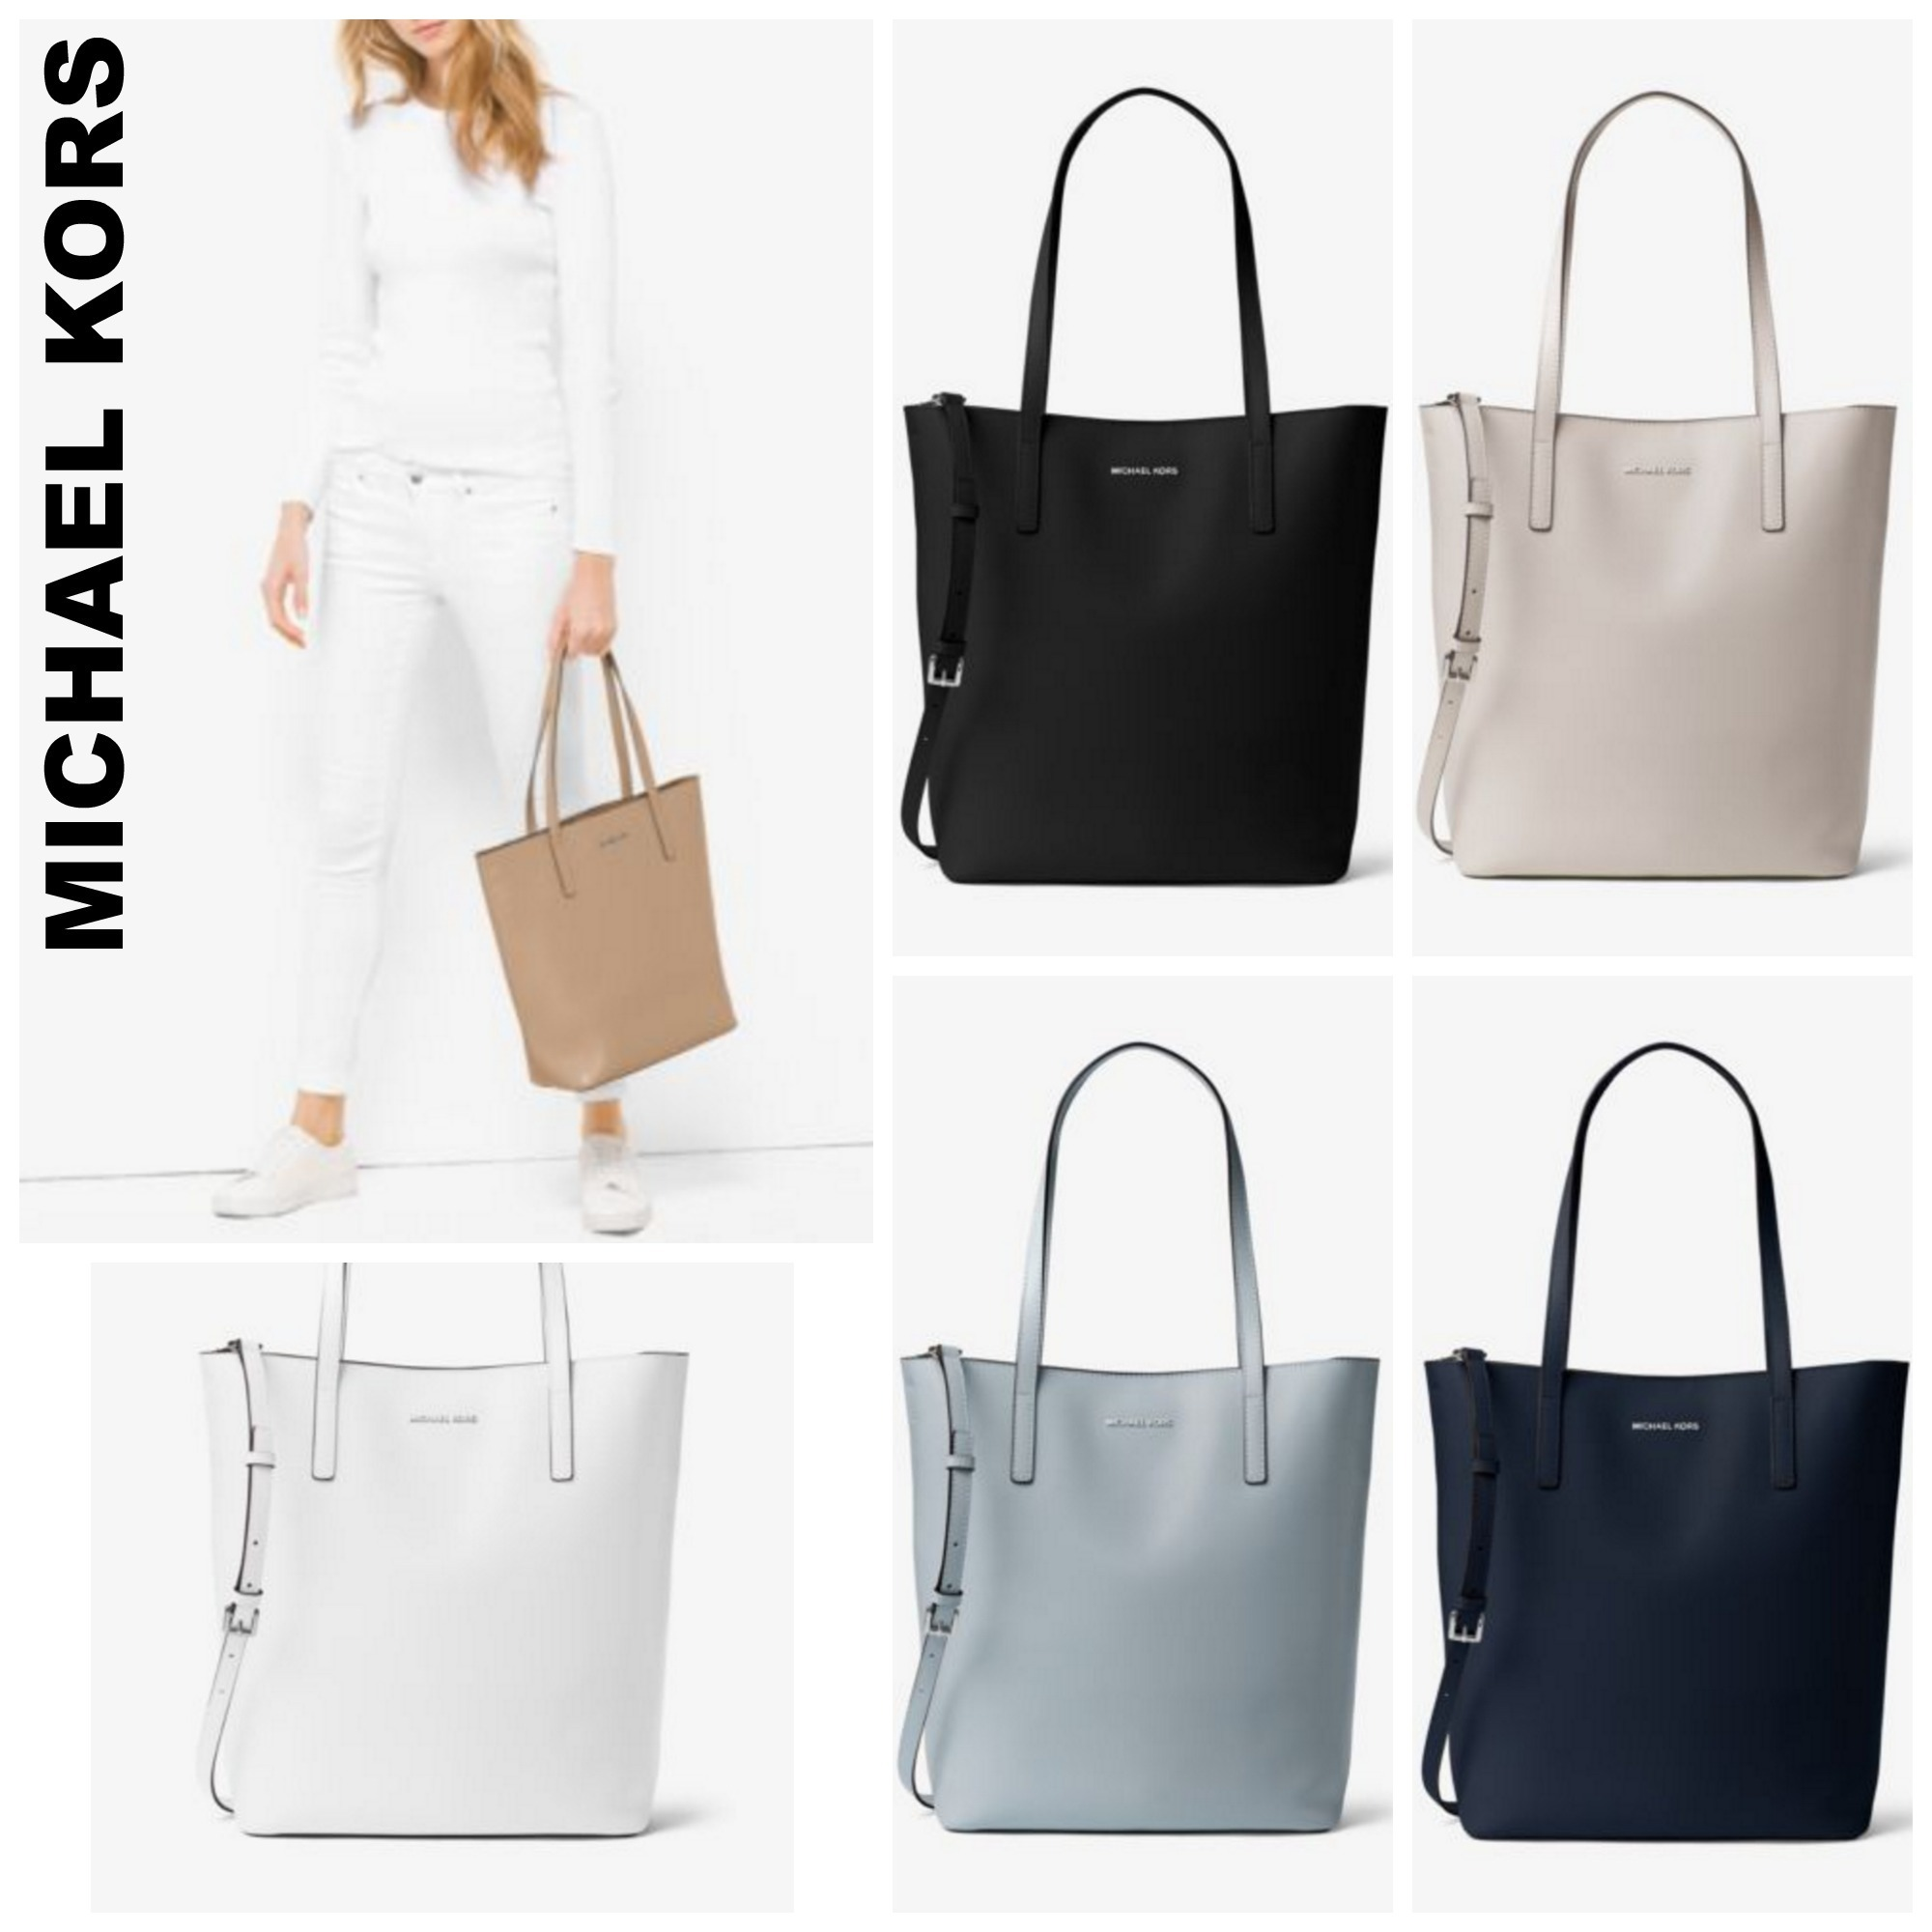 d4f26bef7fd0b Michael Kors MICHAEL MICHAEL KORS Emry Large Leather Tote Bag by  QueenOfStyle - BUYMA